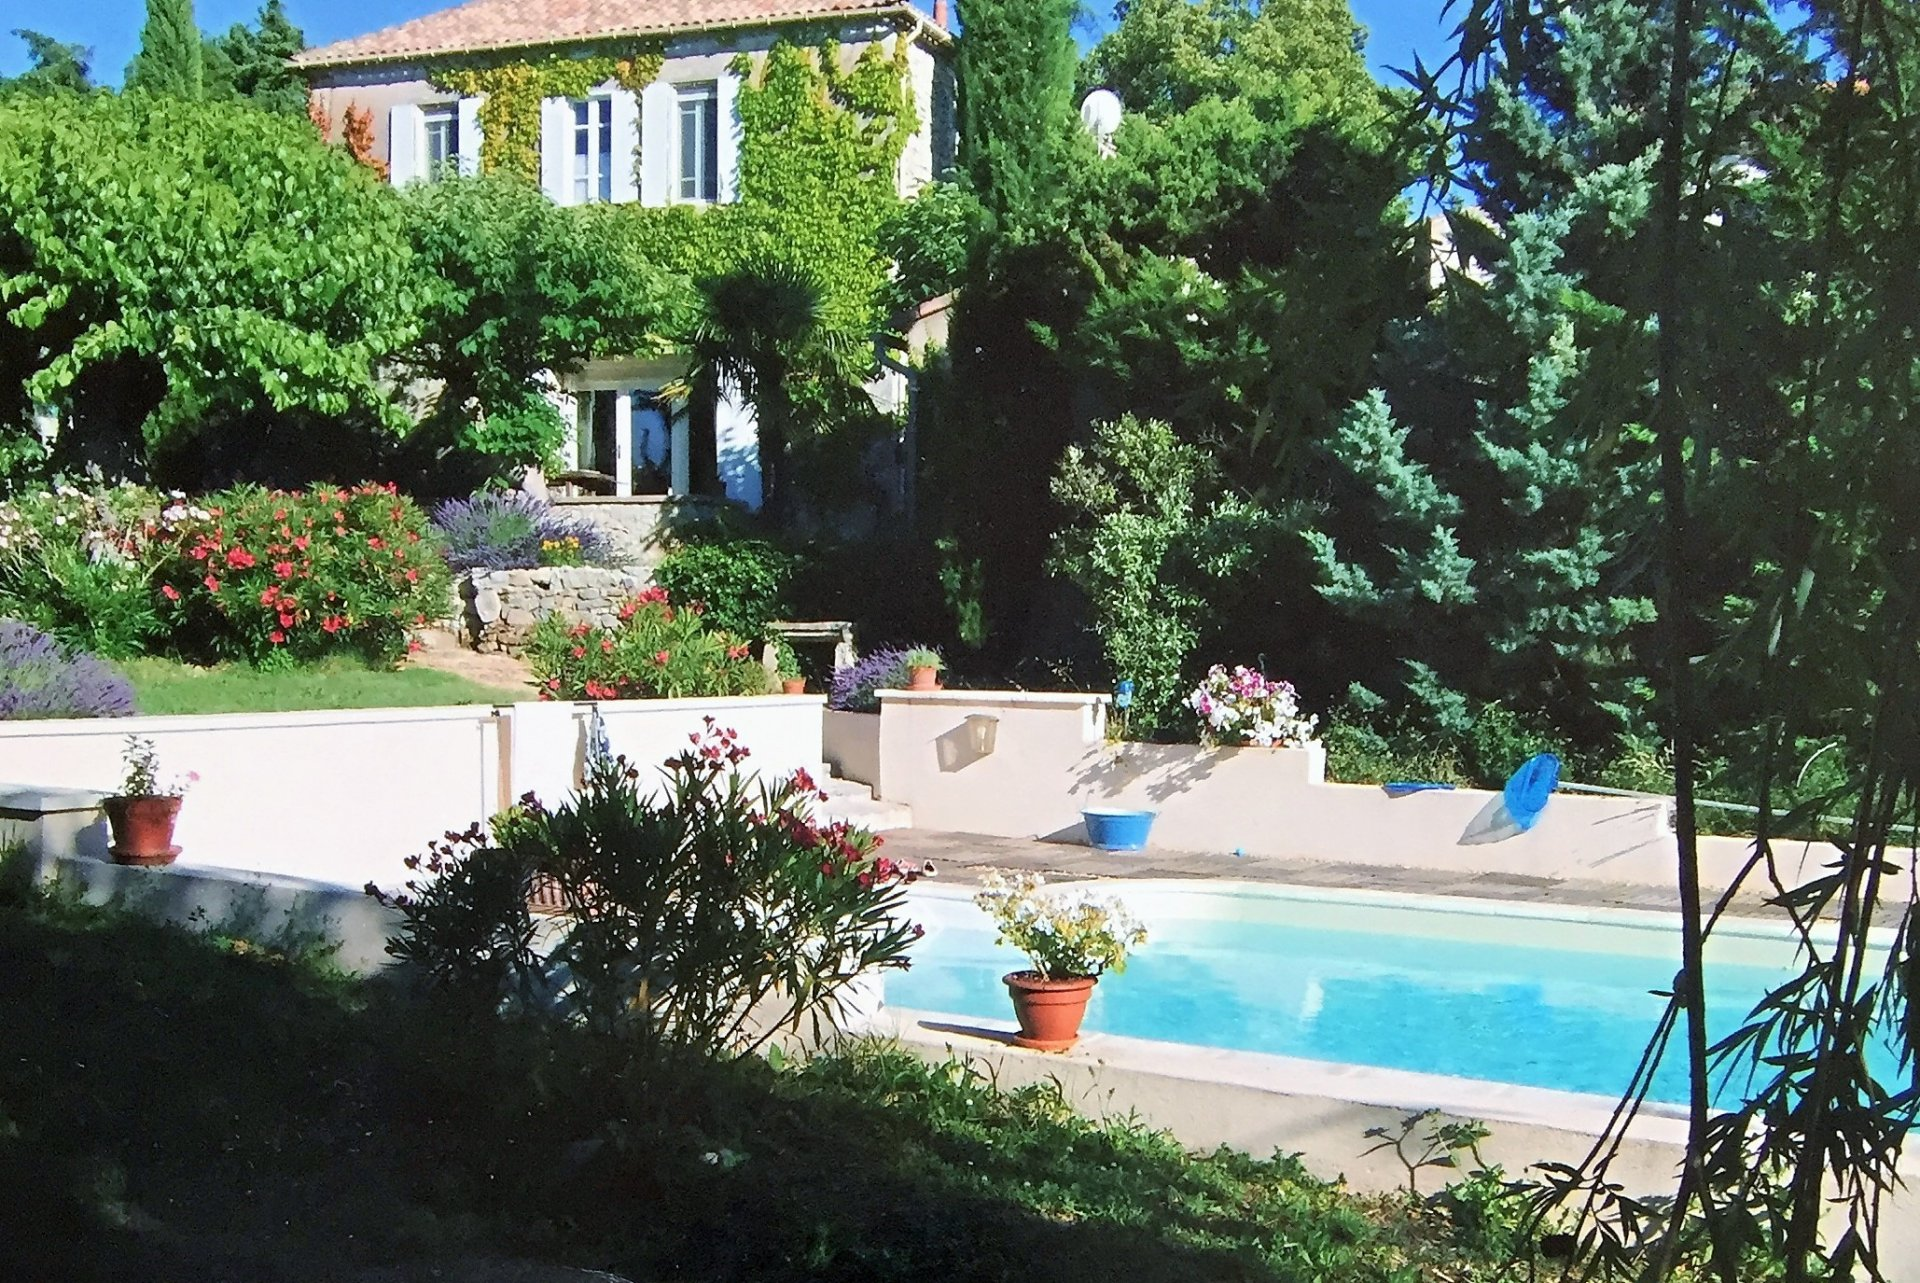 « 2 dwellings in one nice stonehouse »